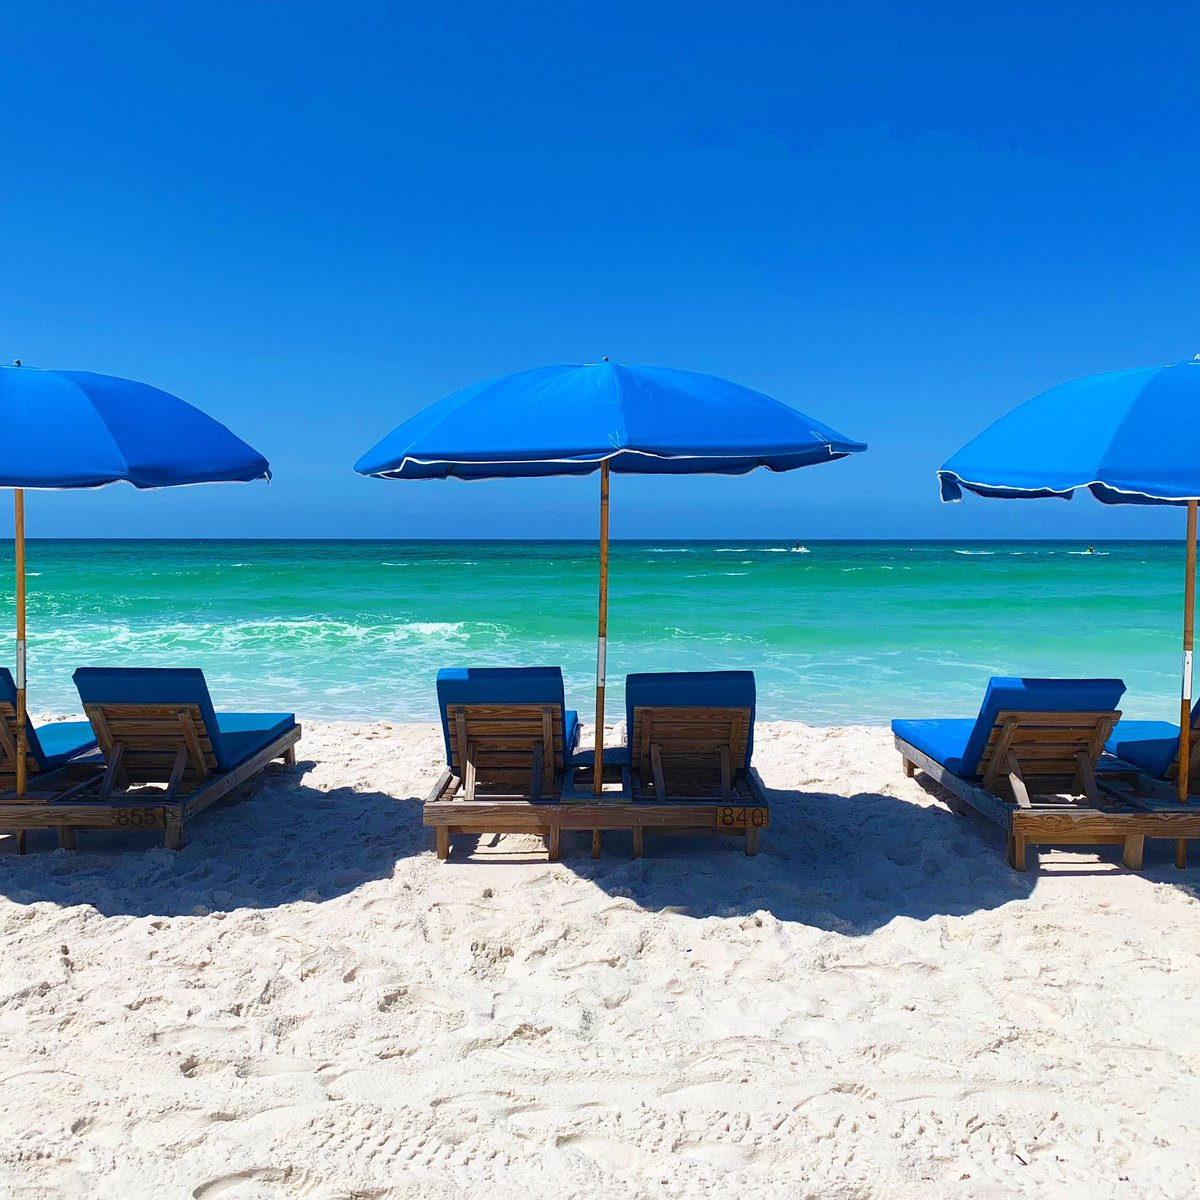 Kicking off #MemorialDayWeekend at the #RealFunBeach. We'll save you a seat! #LoveFL<br>http://pic.twitter.com/r0zBsgZQMx